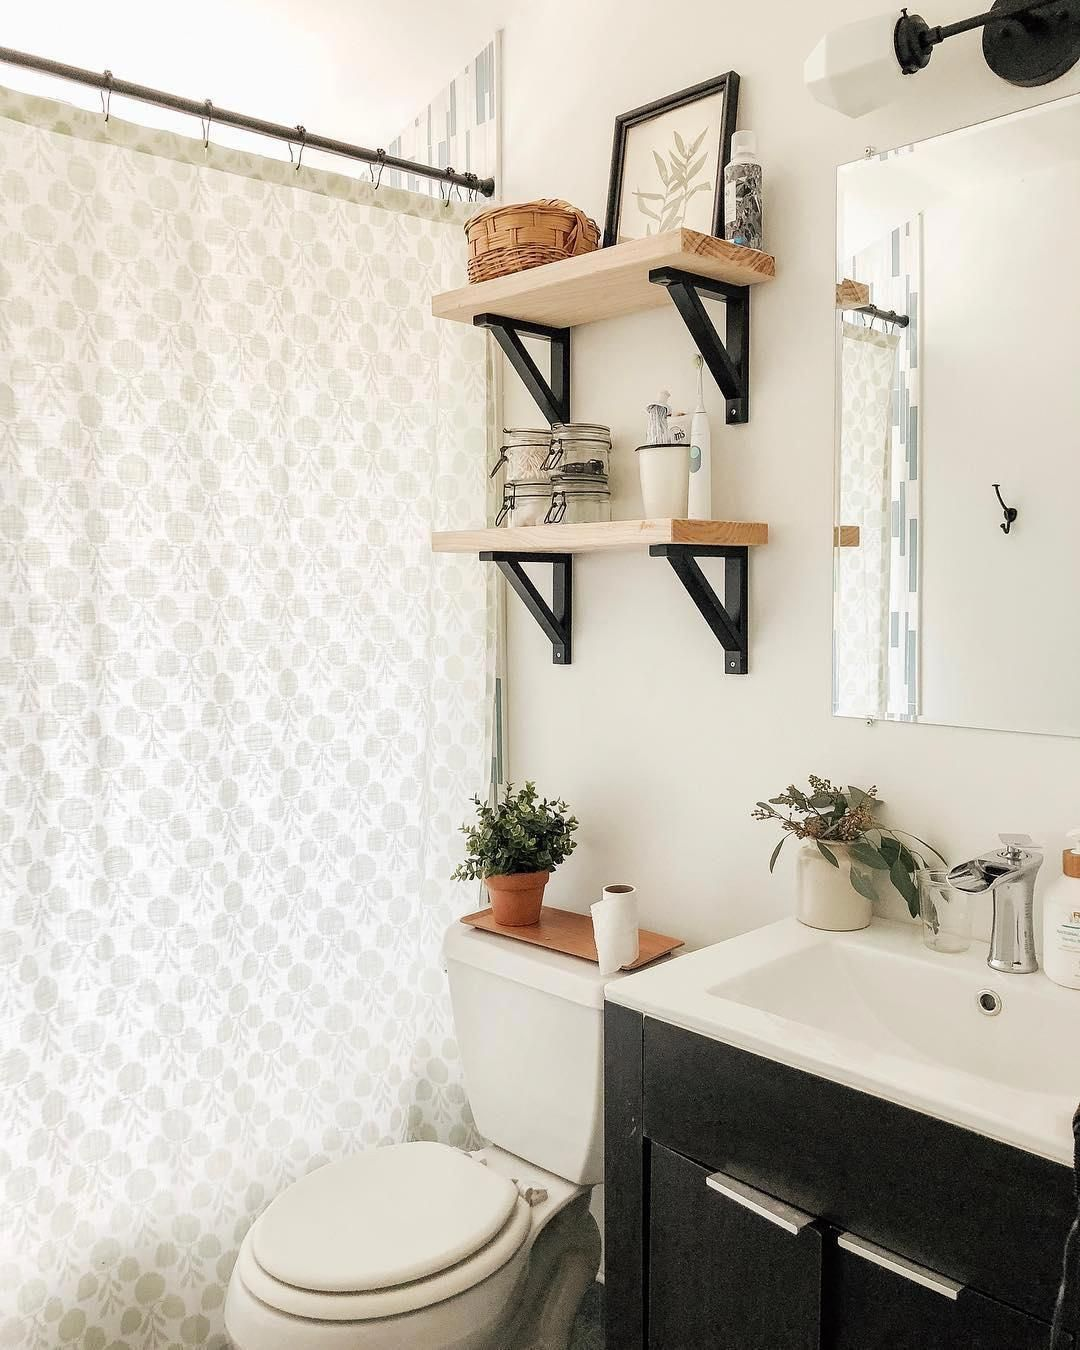 Happy First Day Of The Oneroomchallenge I Am Planning If All Goes Well And My Husband Is Agreeable Small Bathroom Decor Bathroom Decor Modern Boho Bathroom